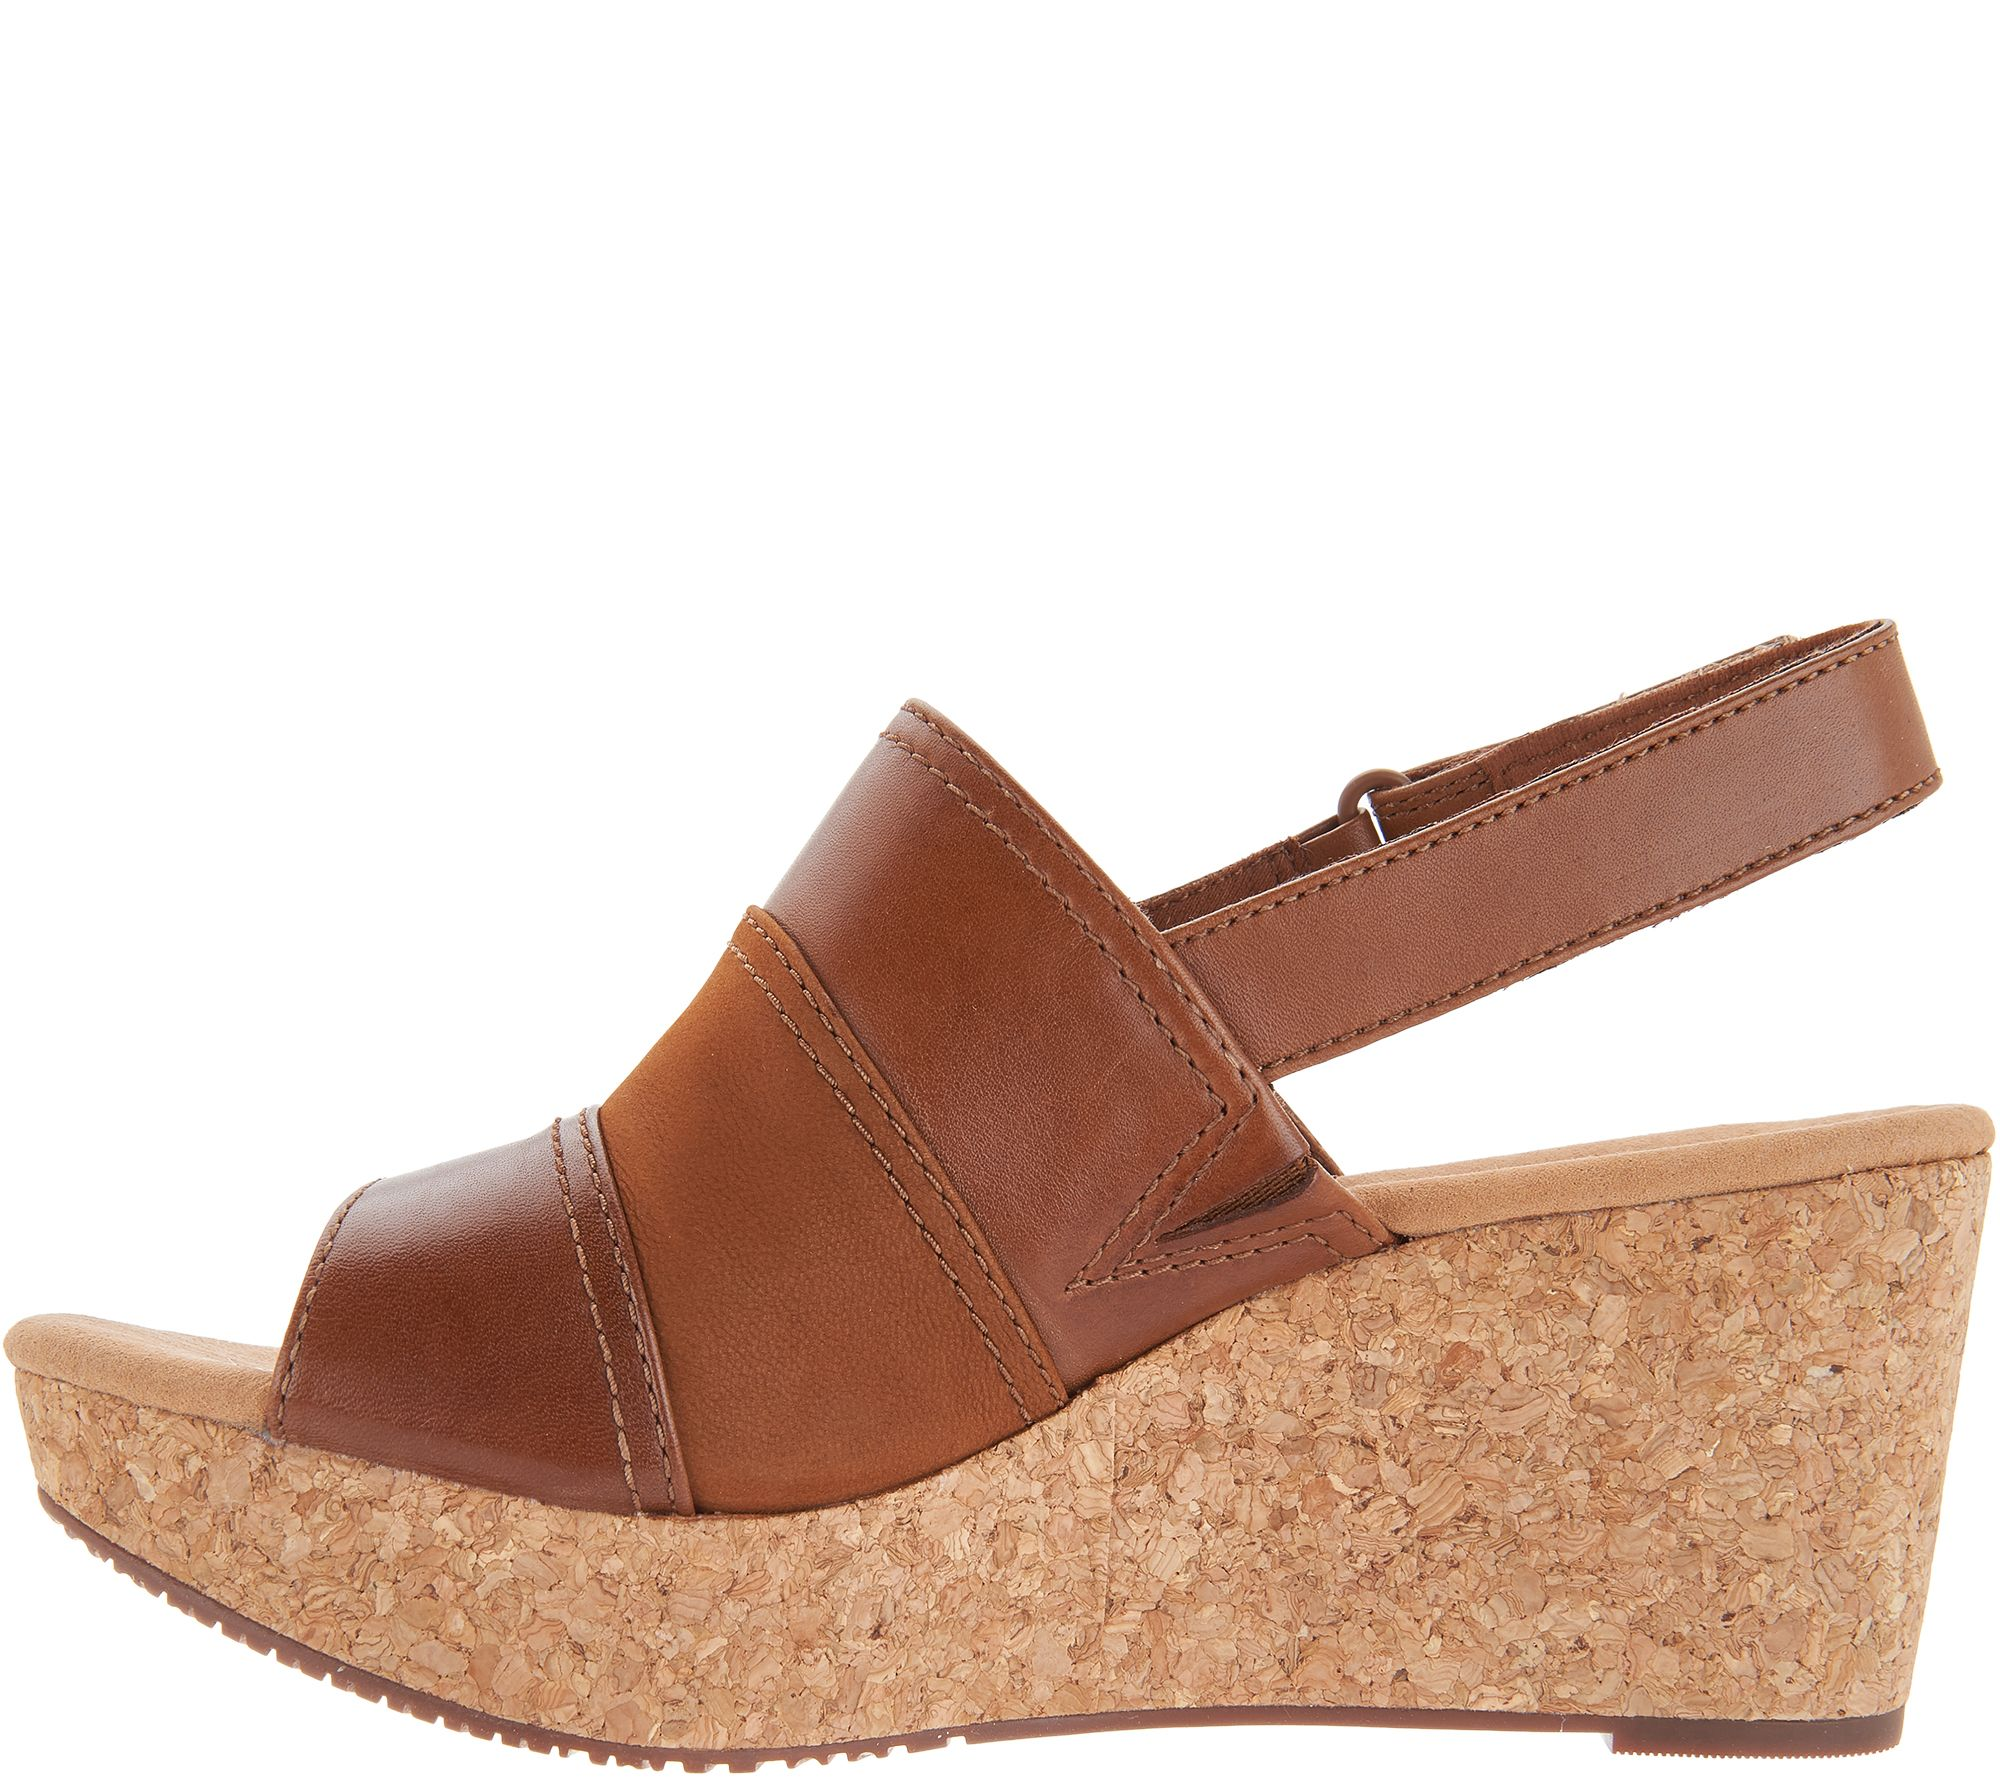 Wedge Clarks Leather Page Collection Cork Annadel Sandals Janis 8Oknw0P